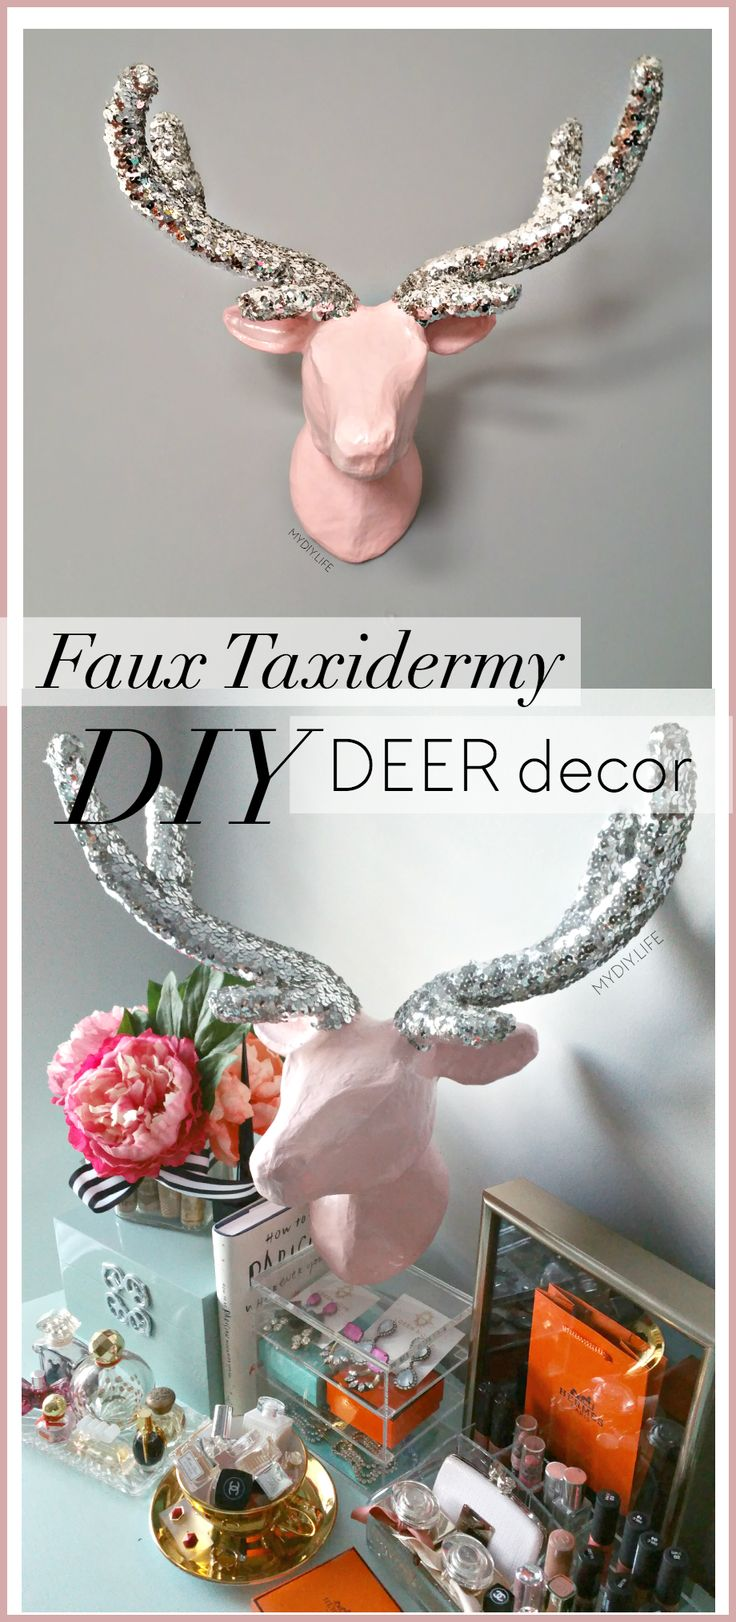 DIY faux taxidermy Deer Head decor tutorial